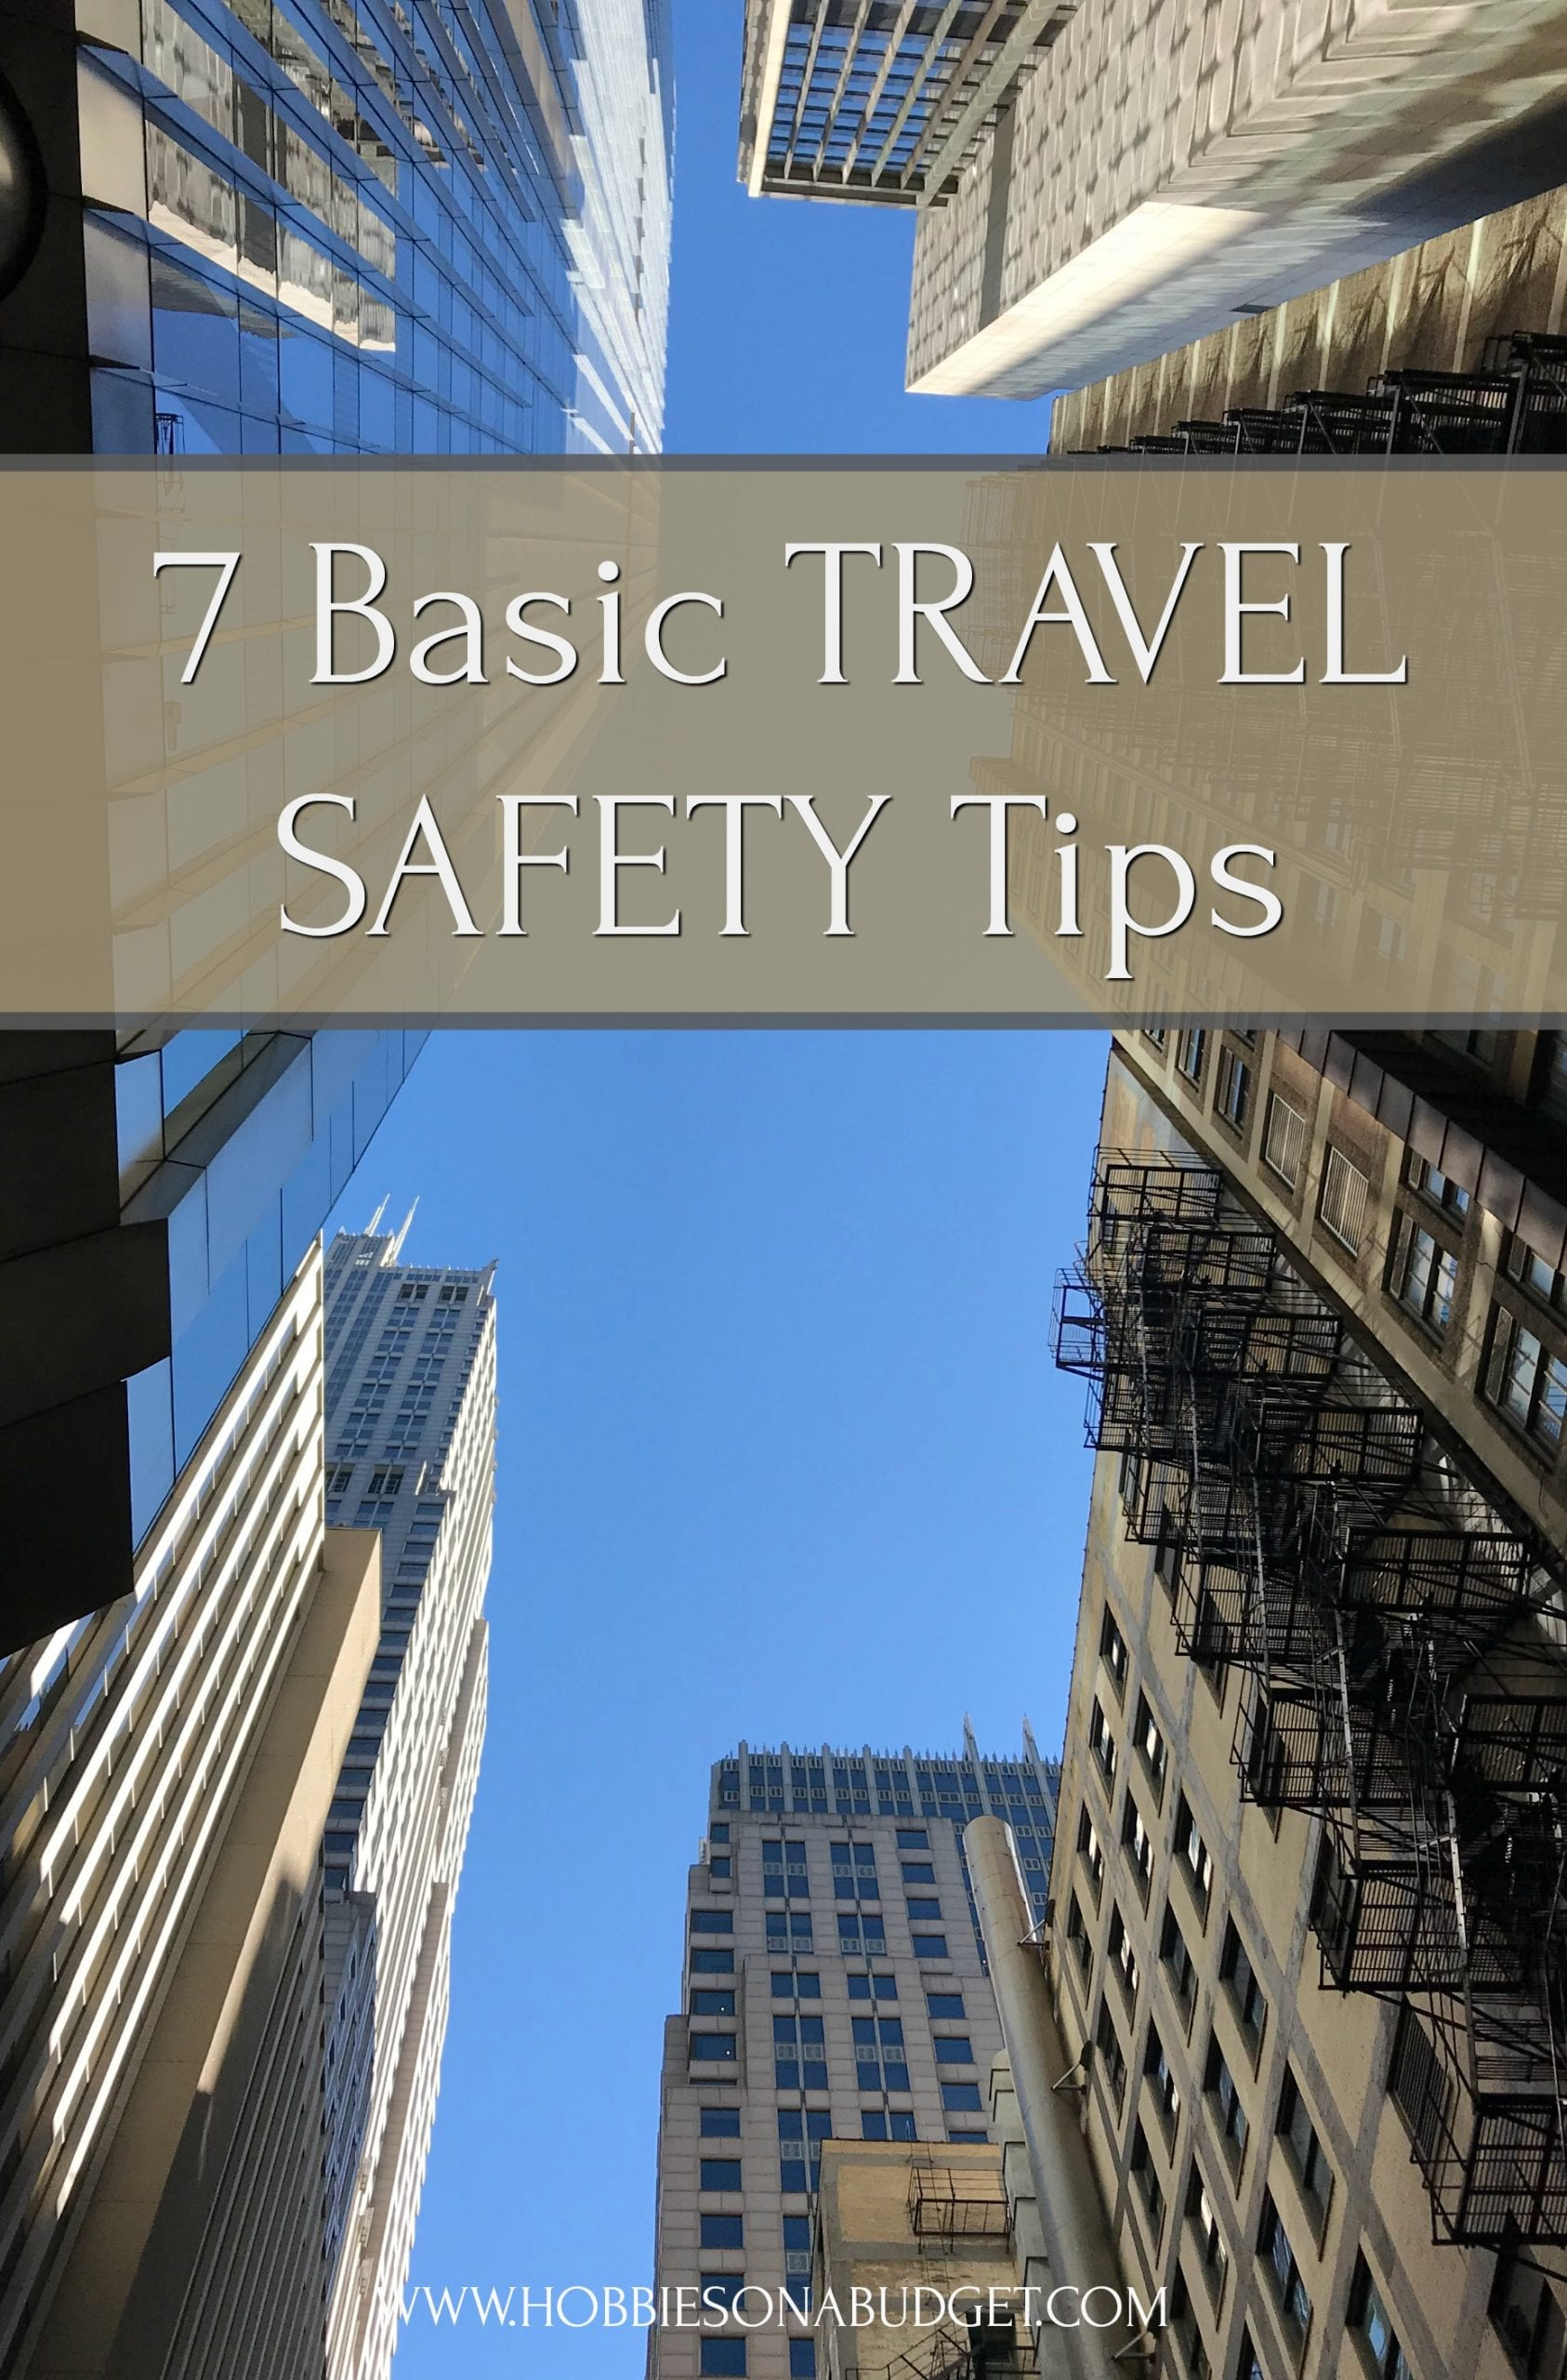 Basic Travel Safety Tips